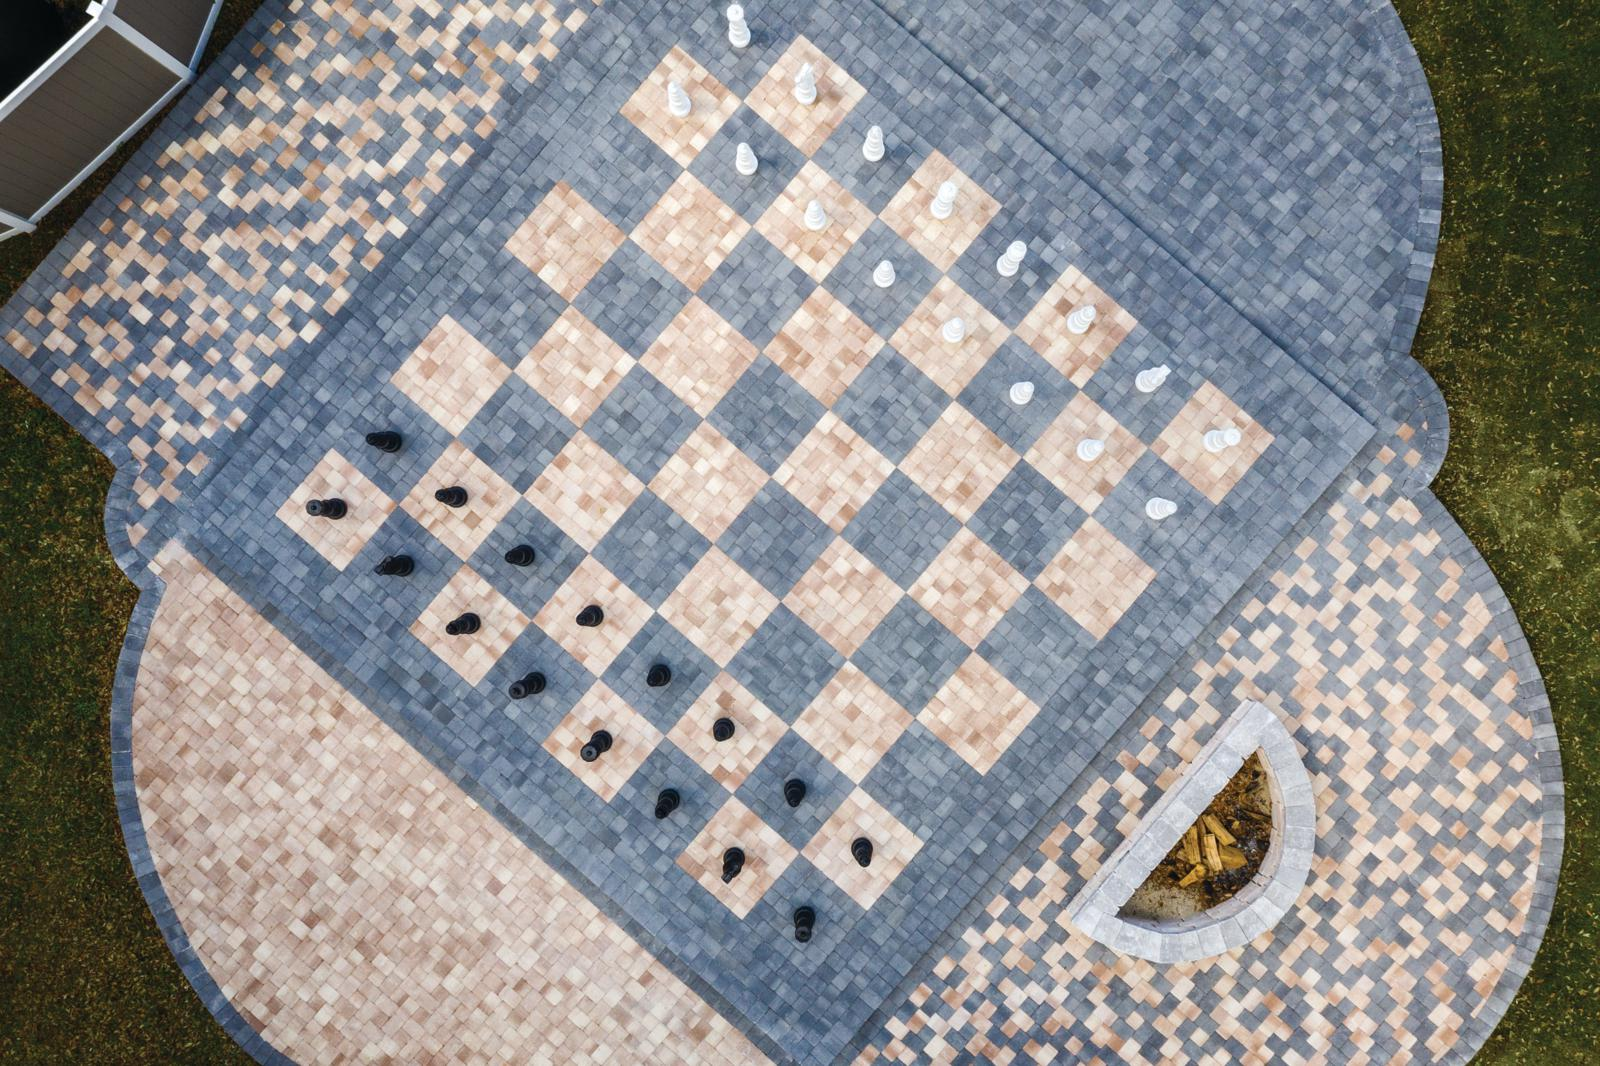 Life Size Custom Chessboard Fire Pit Patio